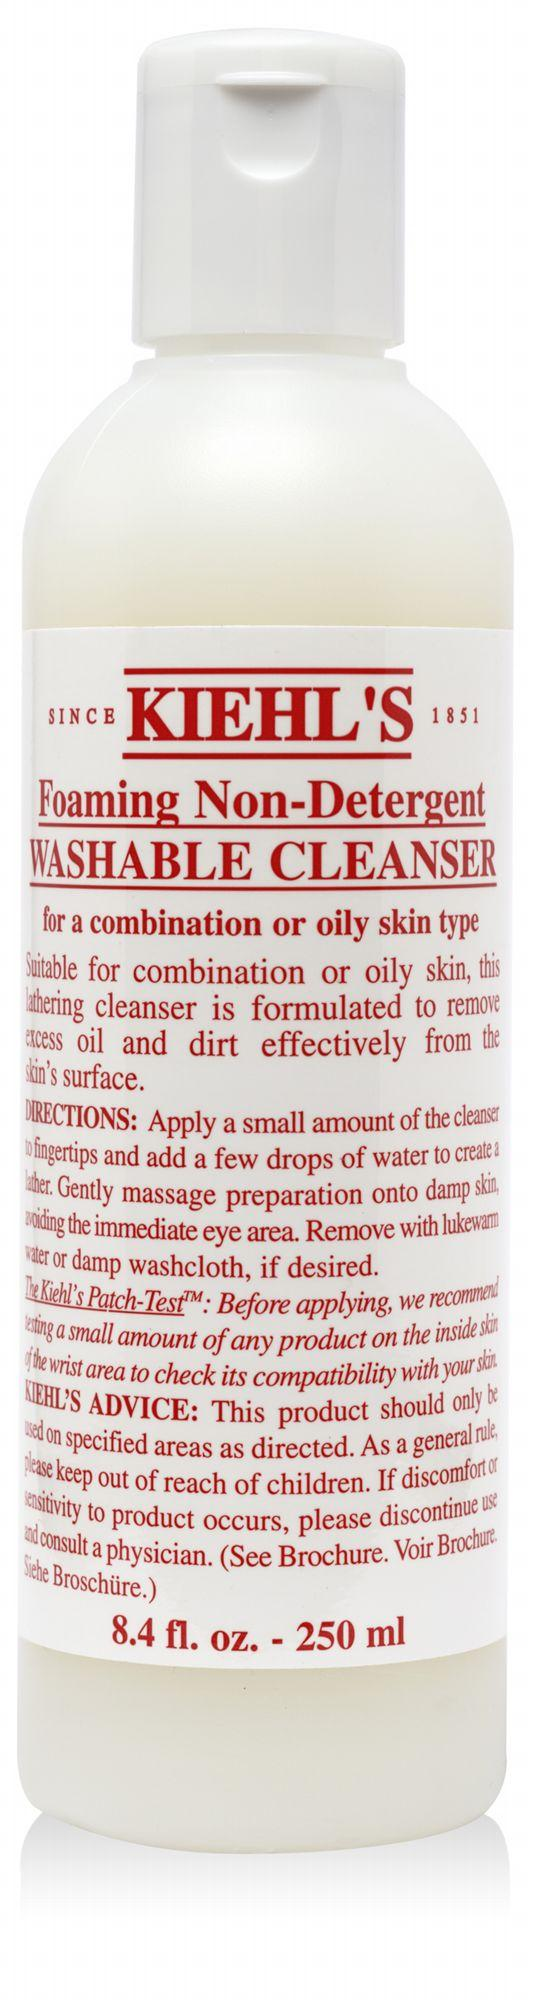 Foaming Non-Detergent Washable Cleanser